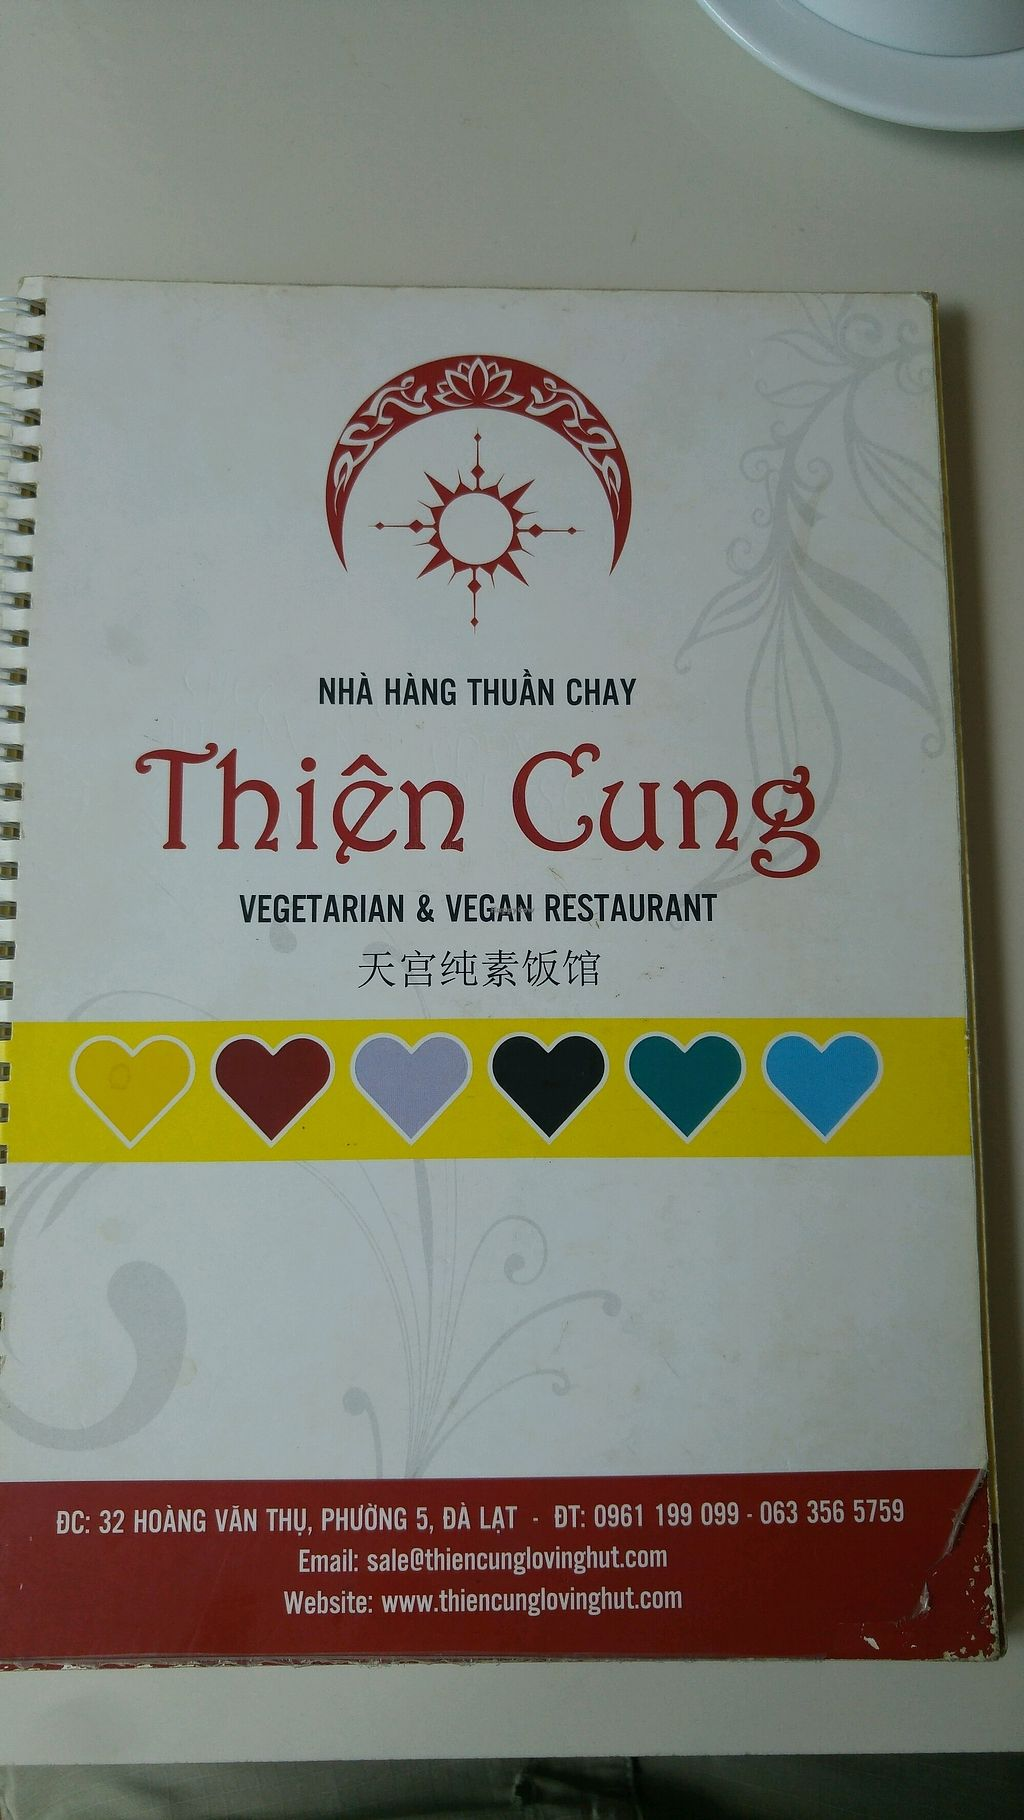 """Photo of Thien Cung - Loving Hut  by <a href=""""/members/profile/daveVN"""">daveVN</a> <br/>menu - front <br/> September 19, 2017  - <a href='/contact/abuse/image/100280/306000'>Report</a>"""